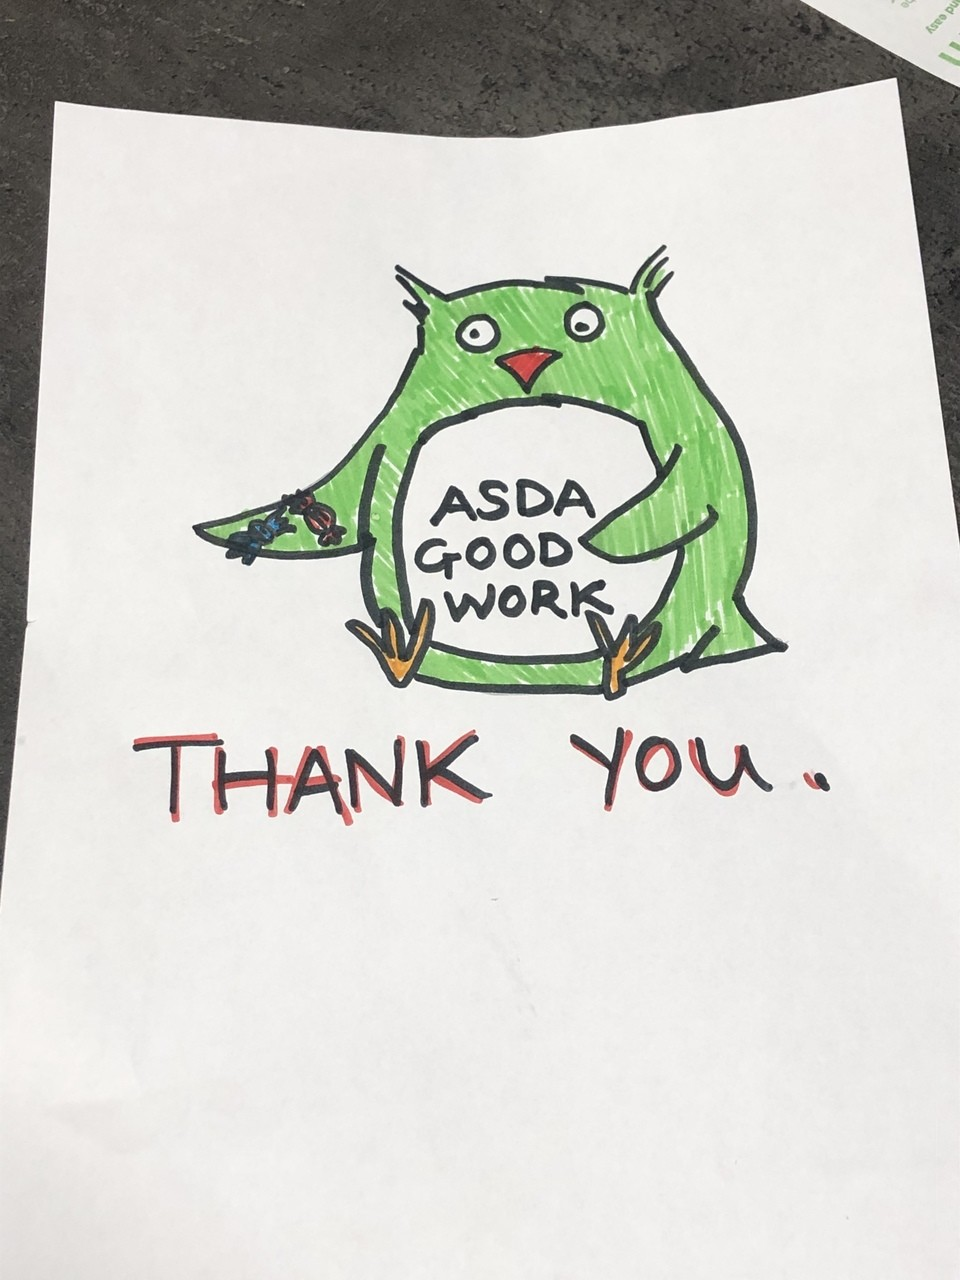 Making our colleagues smile  | Asda Charlton